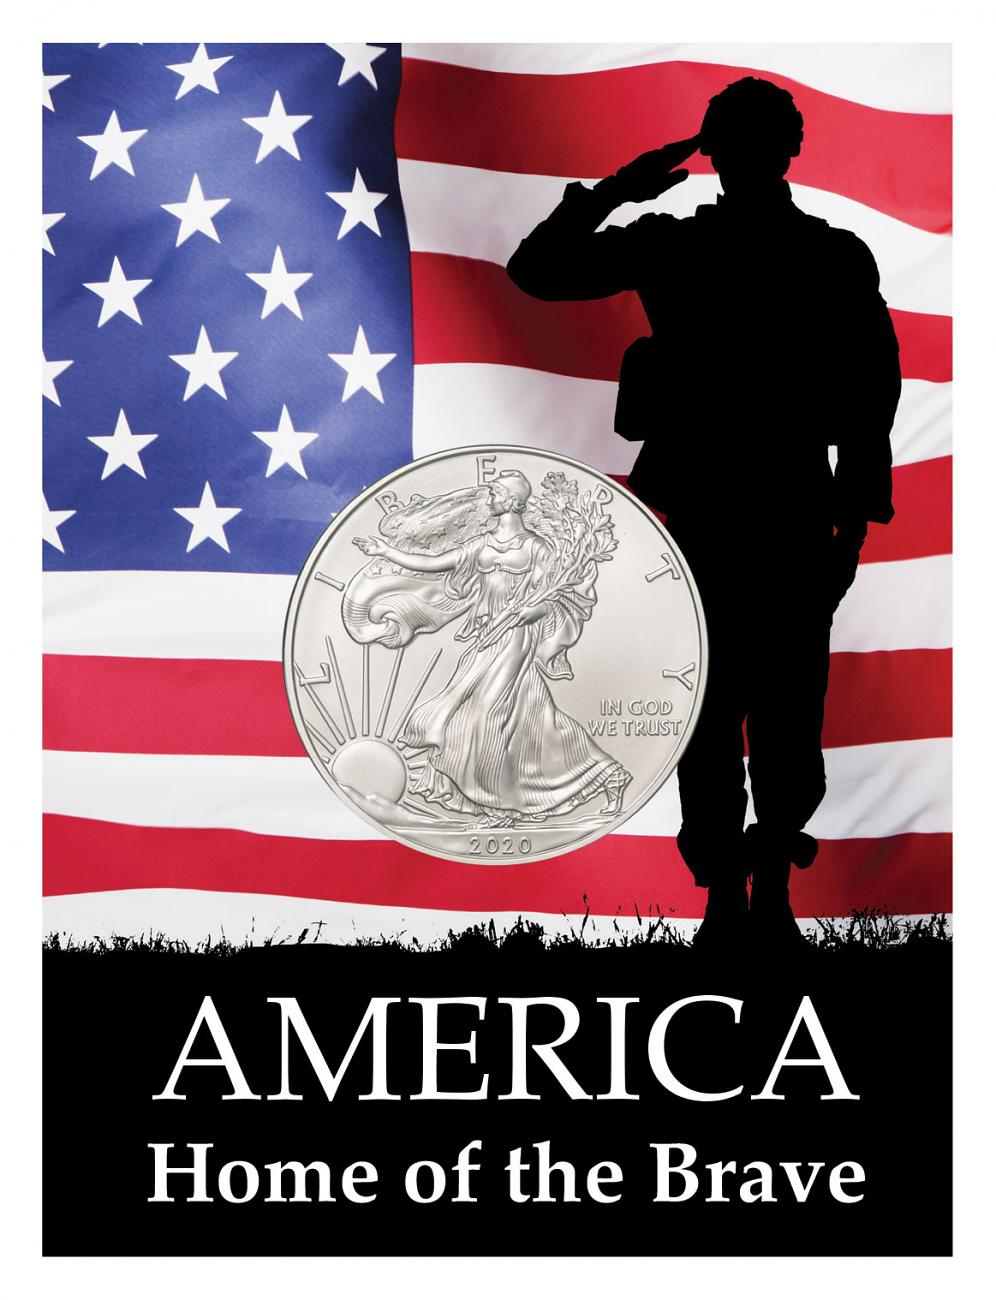 2020 1 oz. American Silver Eagle $1 Coin Patriotic Home of the Brave Coin Card BU